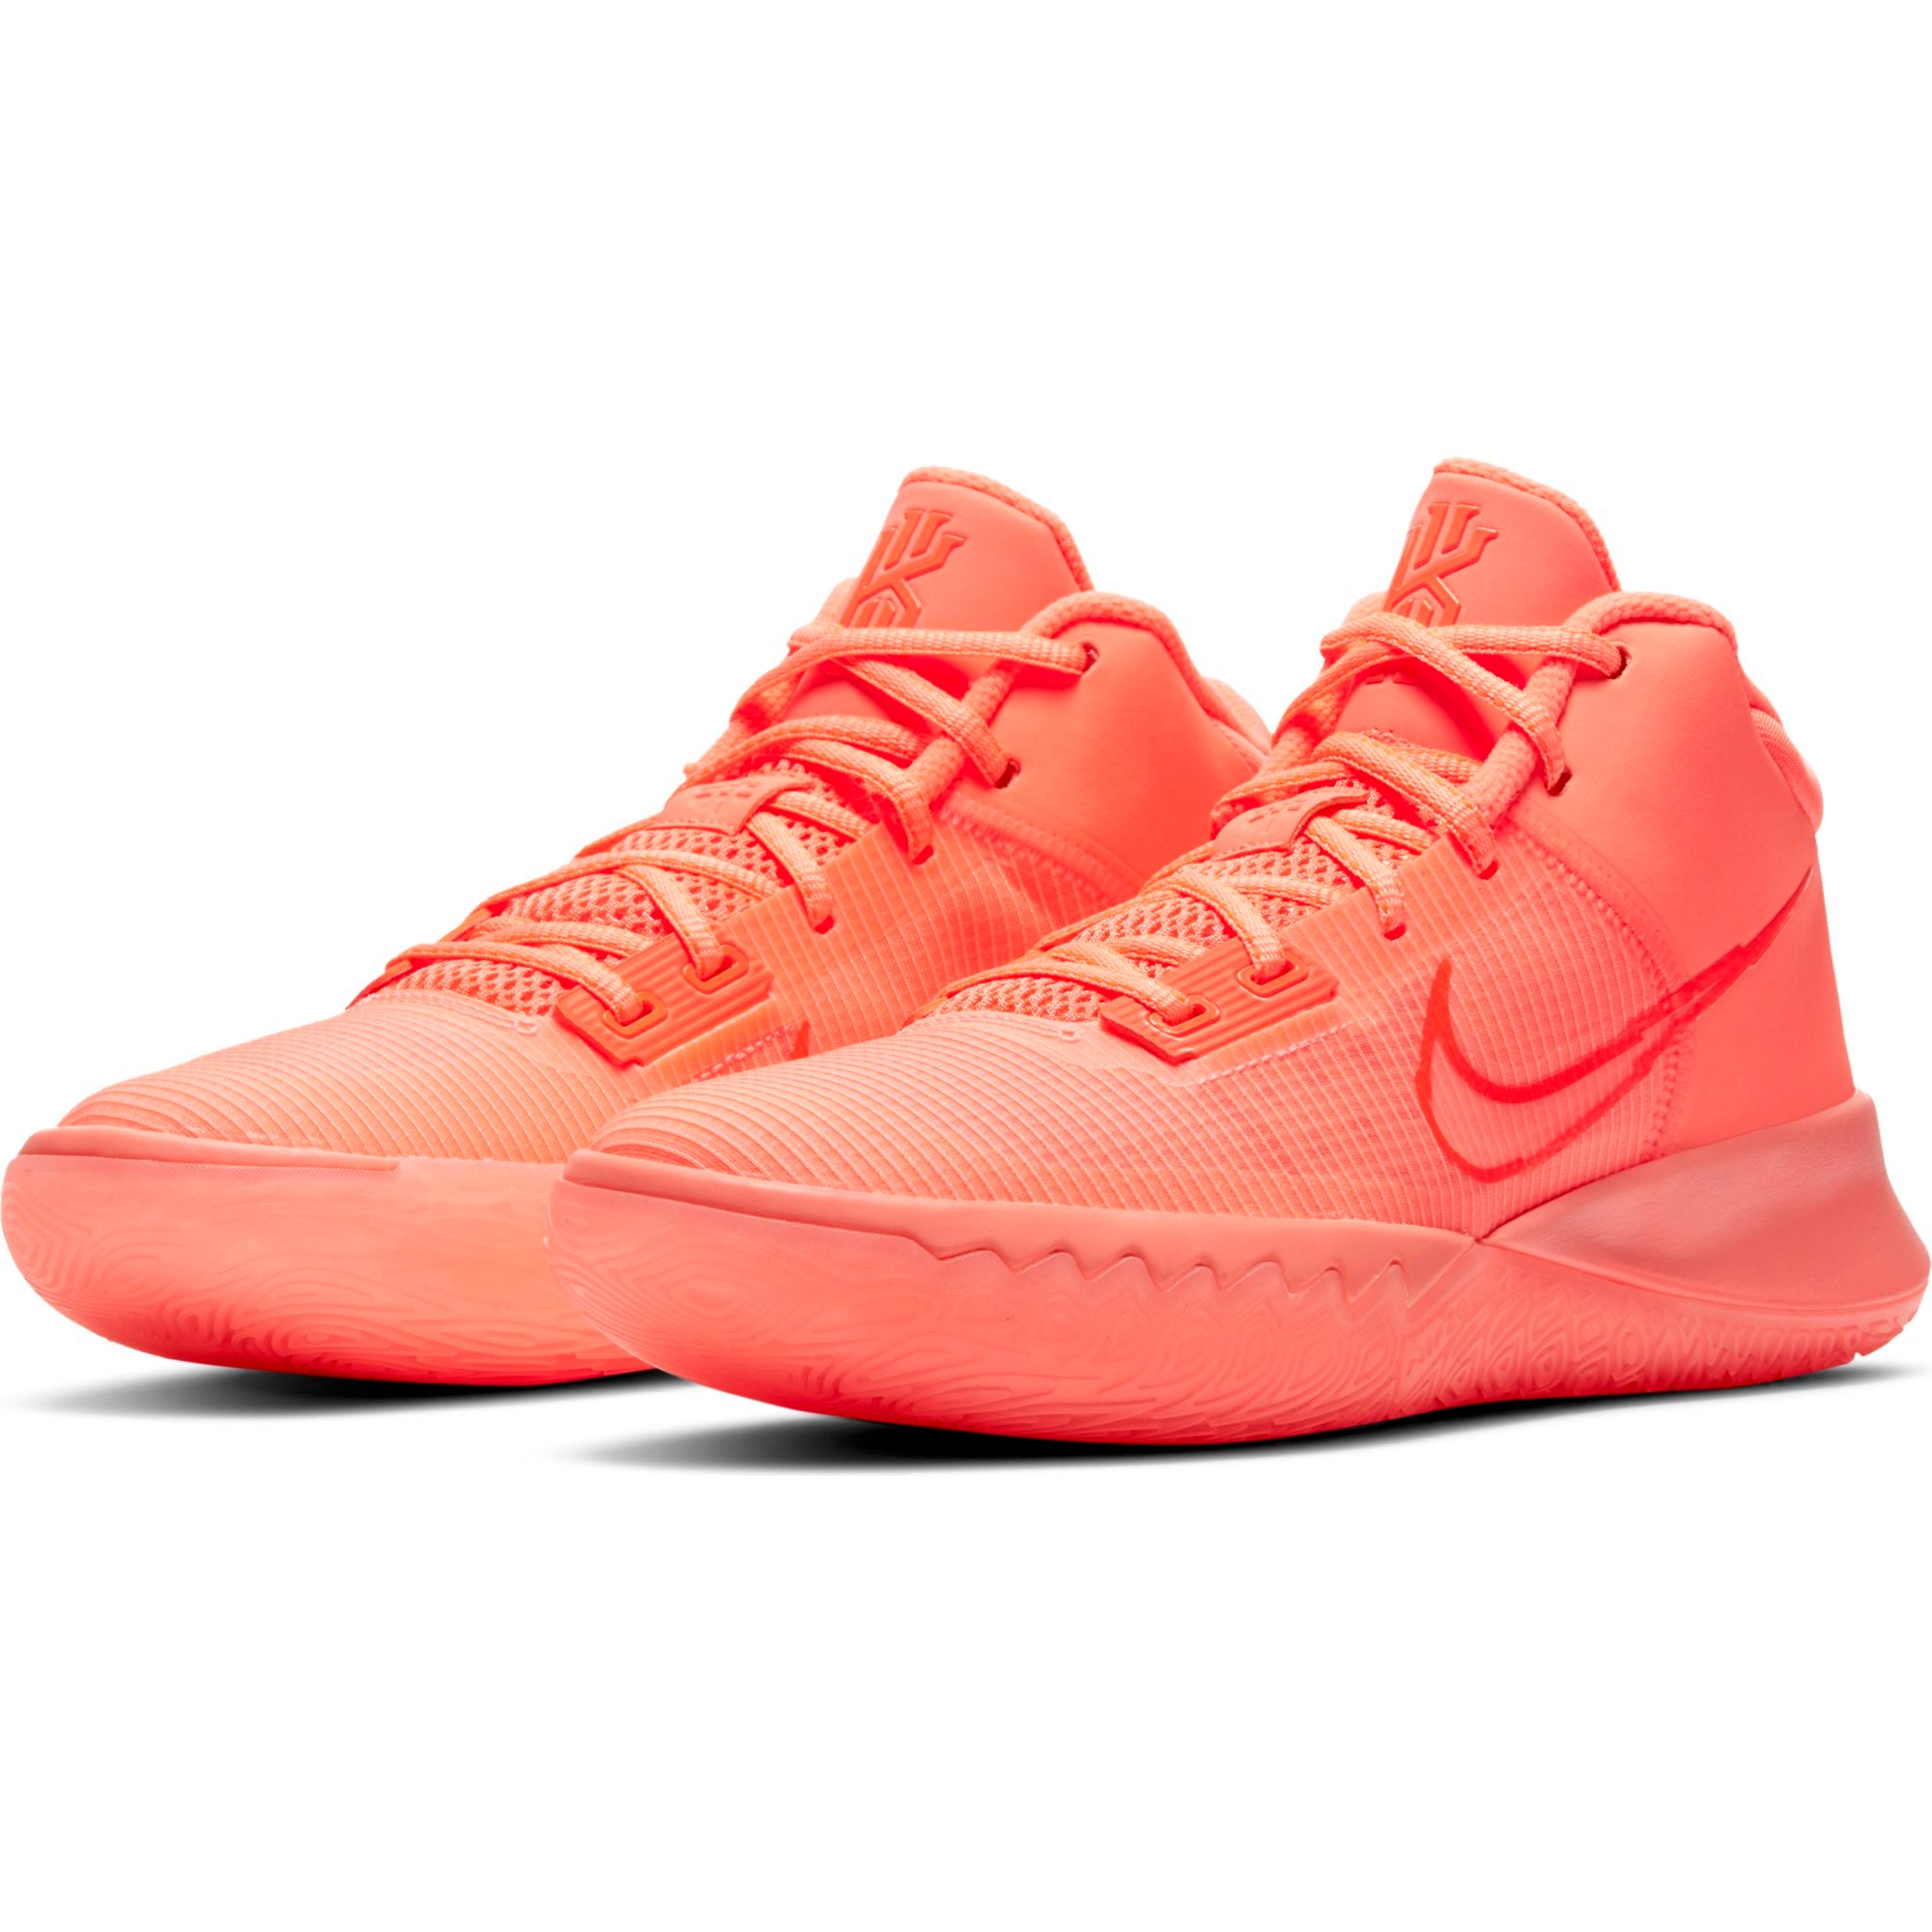 Nike Kyrie Basketball Flytrap 4 Boot/Shoe - Crimson Pulse/Hyper Crimson/Bright Mango NK-CT1972-800